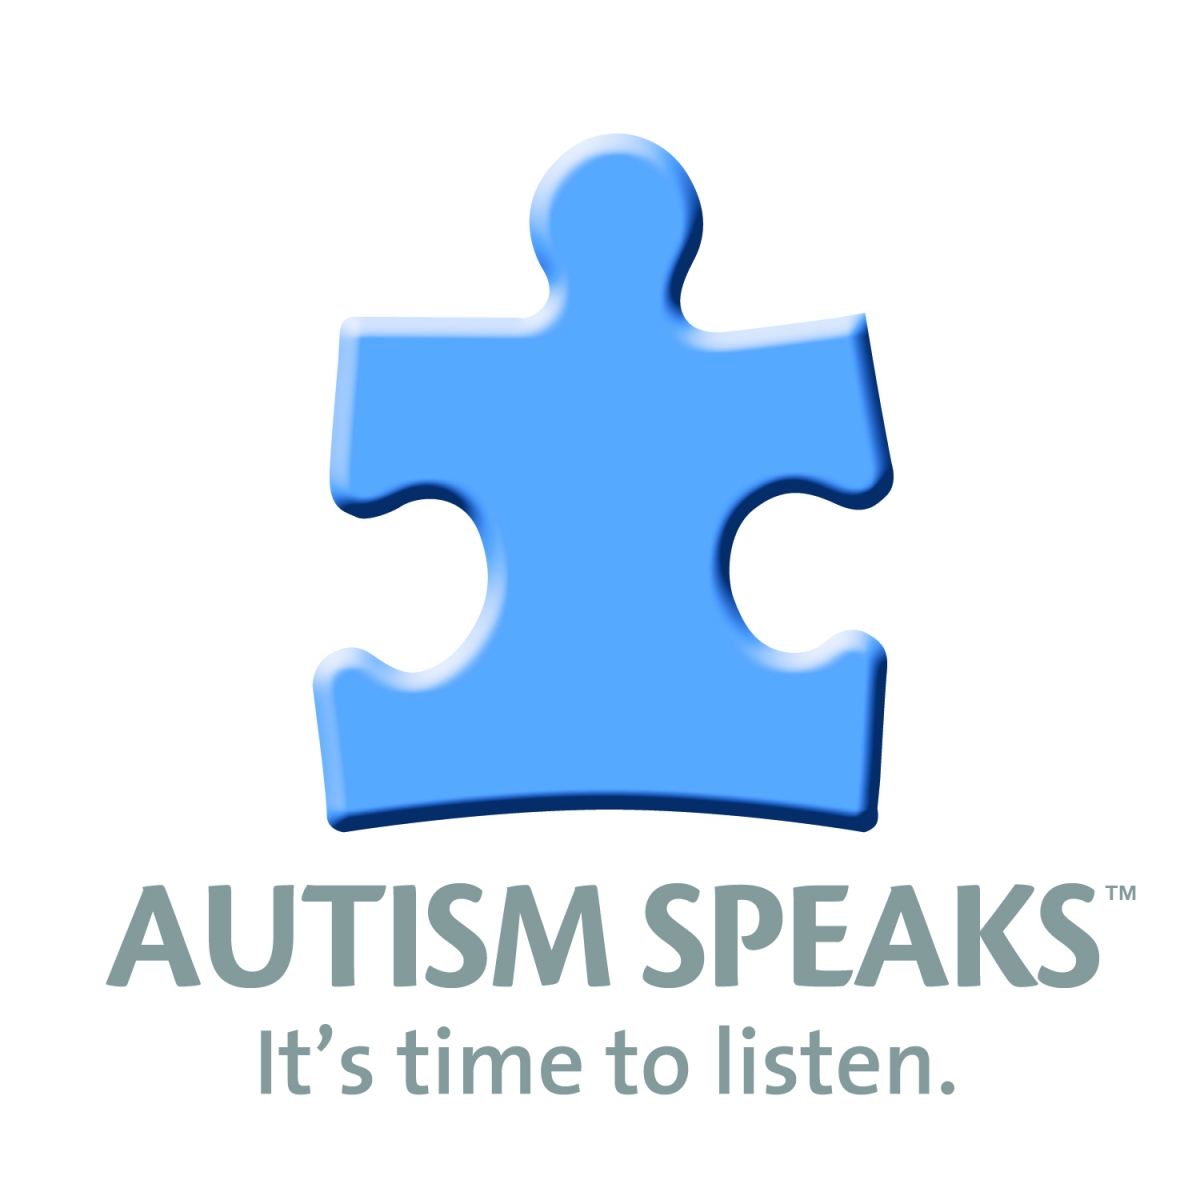 2013-03-24-autism_speaks_blue_beveled__tag_copy.jpg